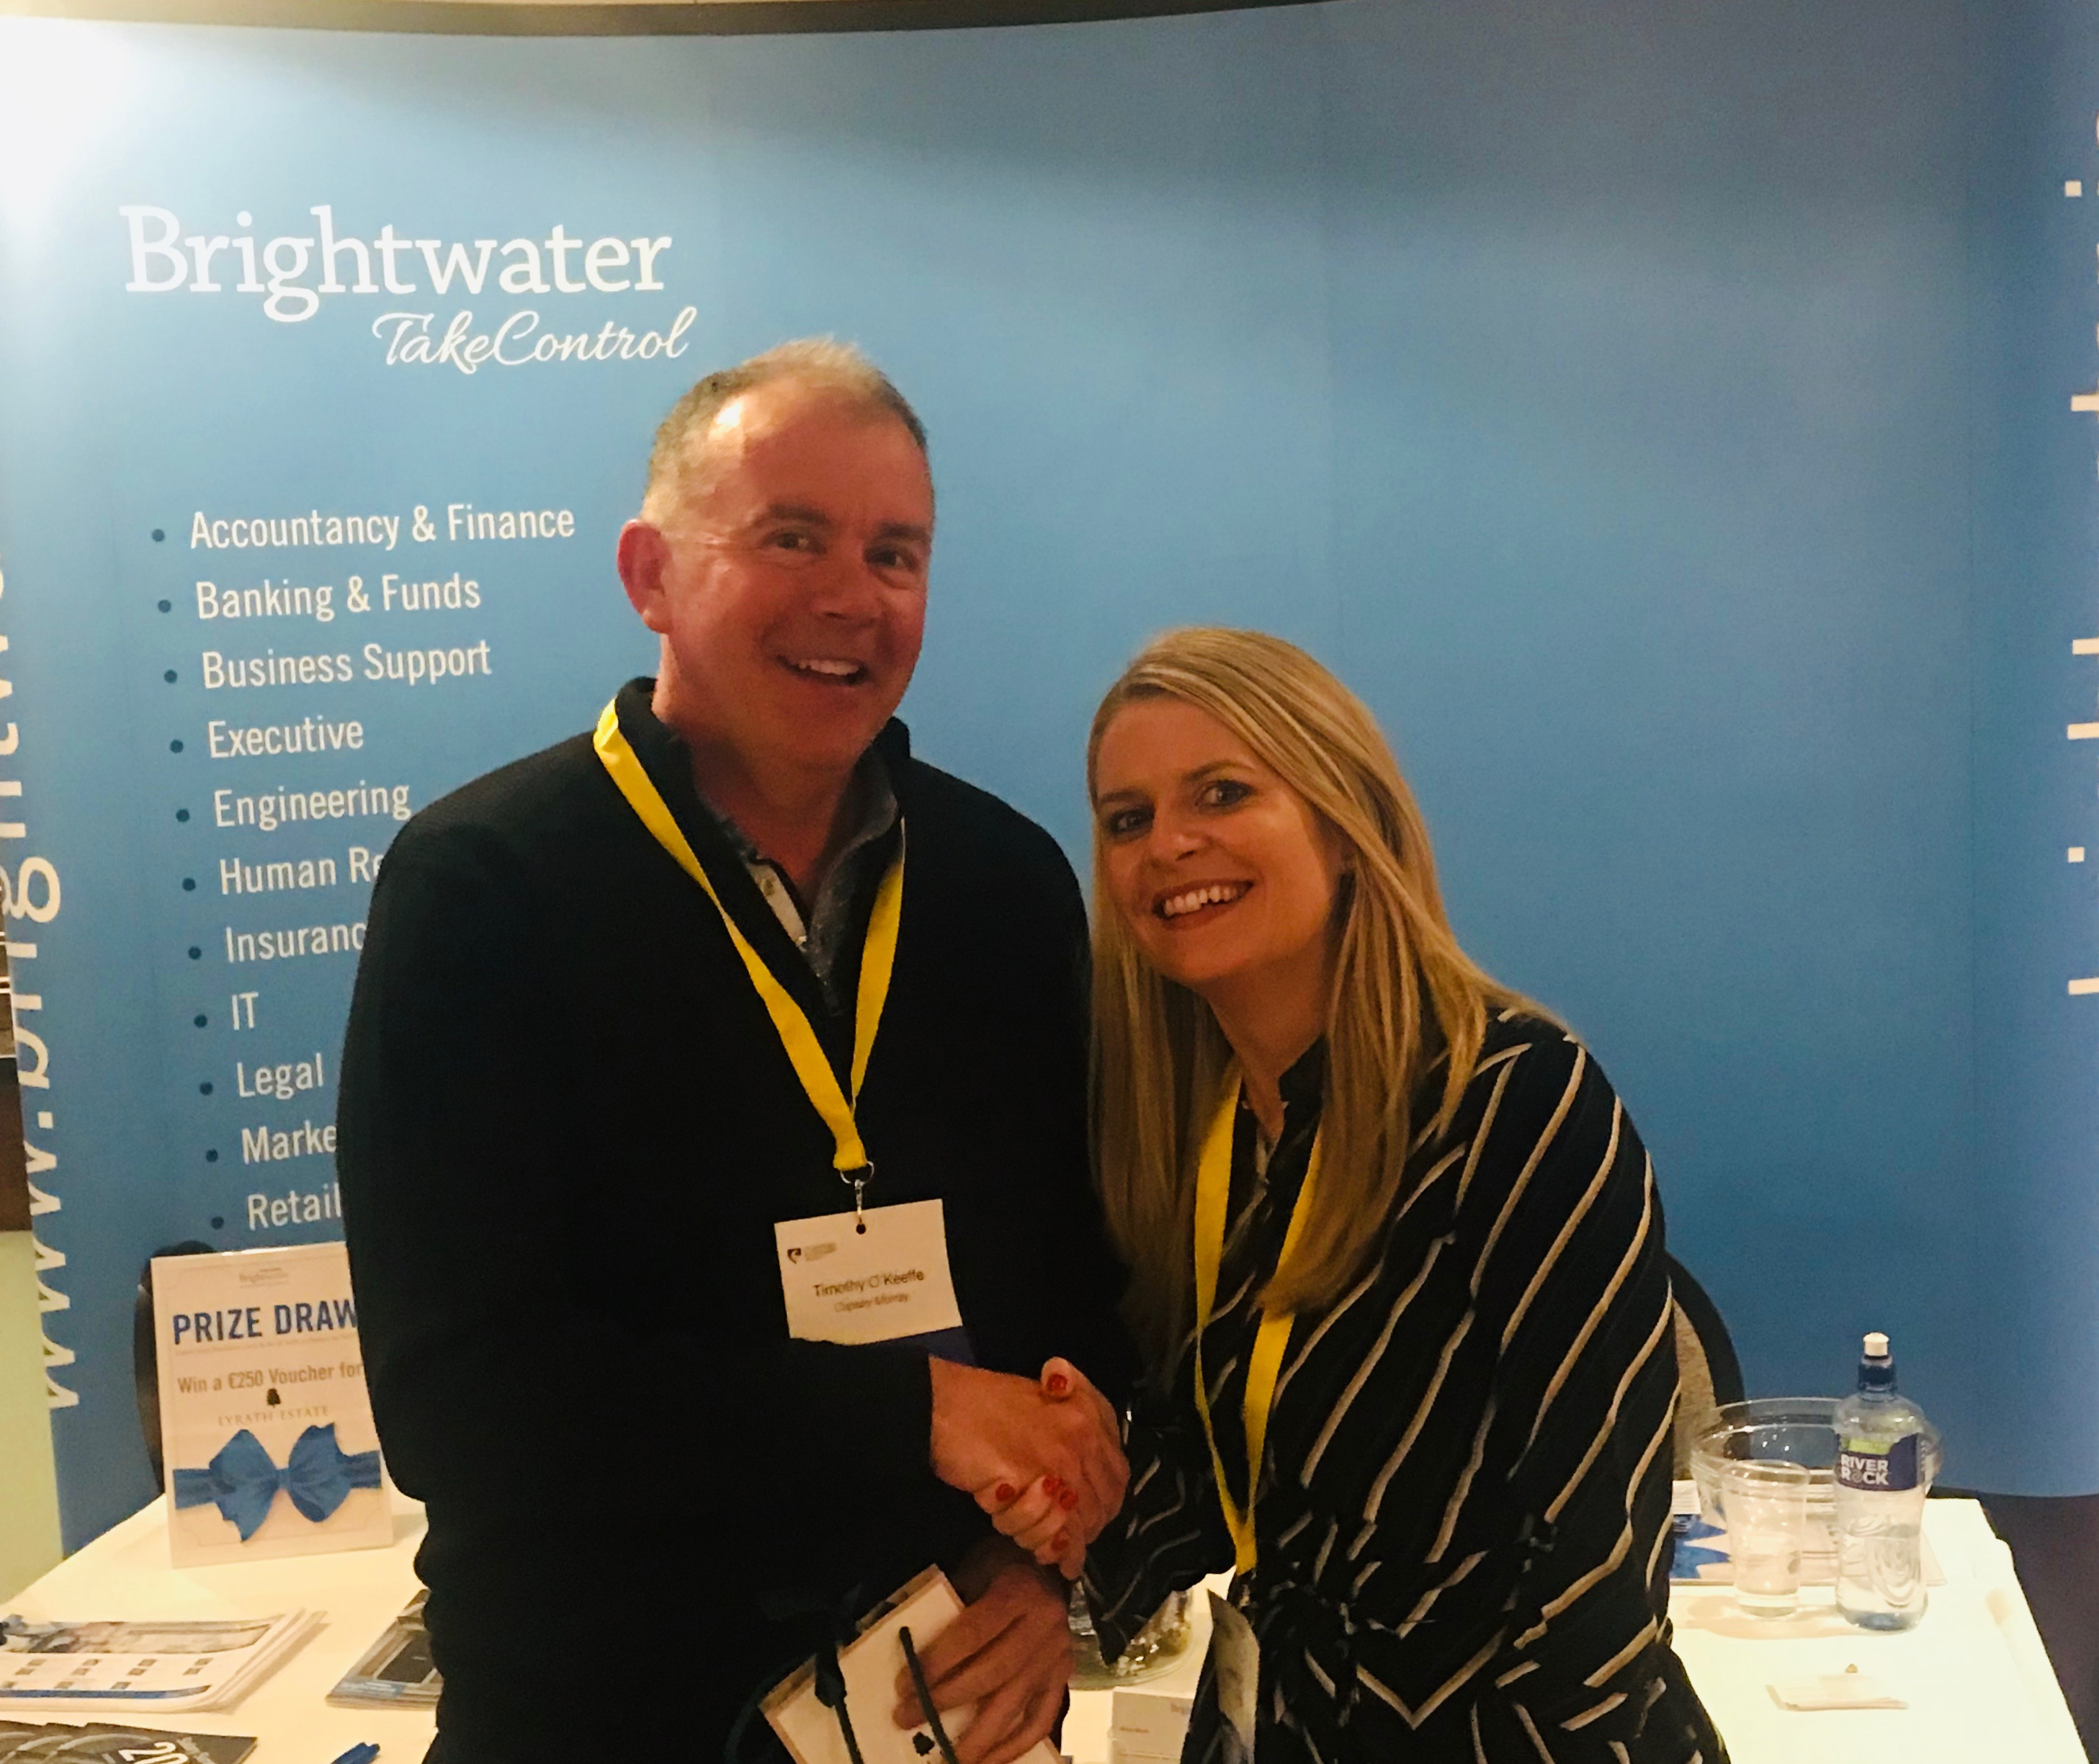 Brightwater prize draw winner Tim O'Keeffe of Copsey Murray together with Brightwater Commercial Director Jean O'Donovan